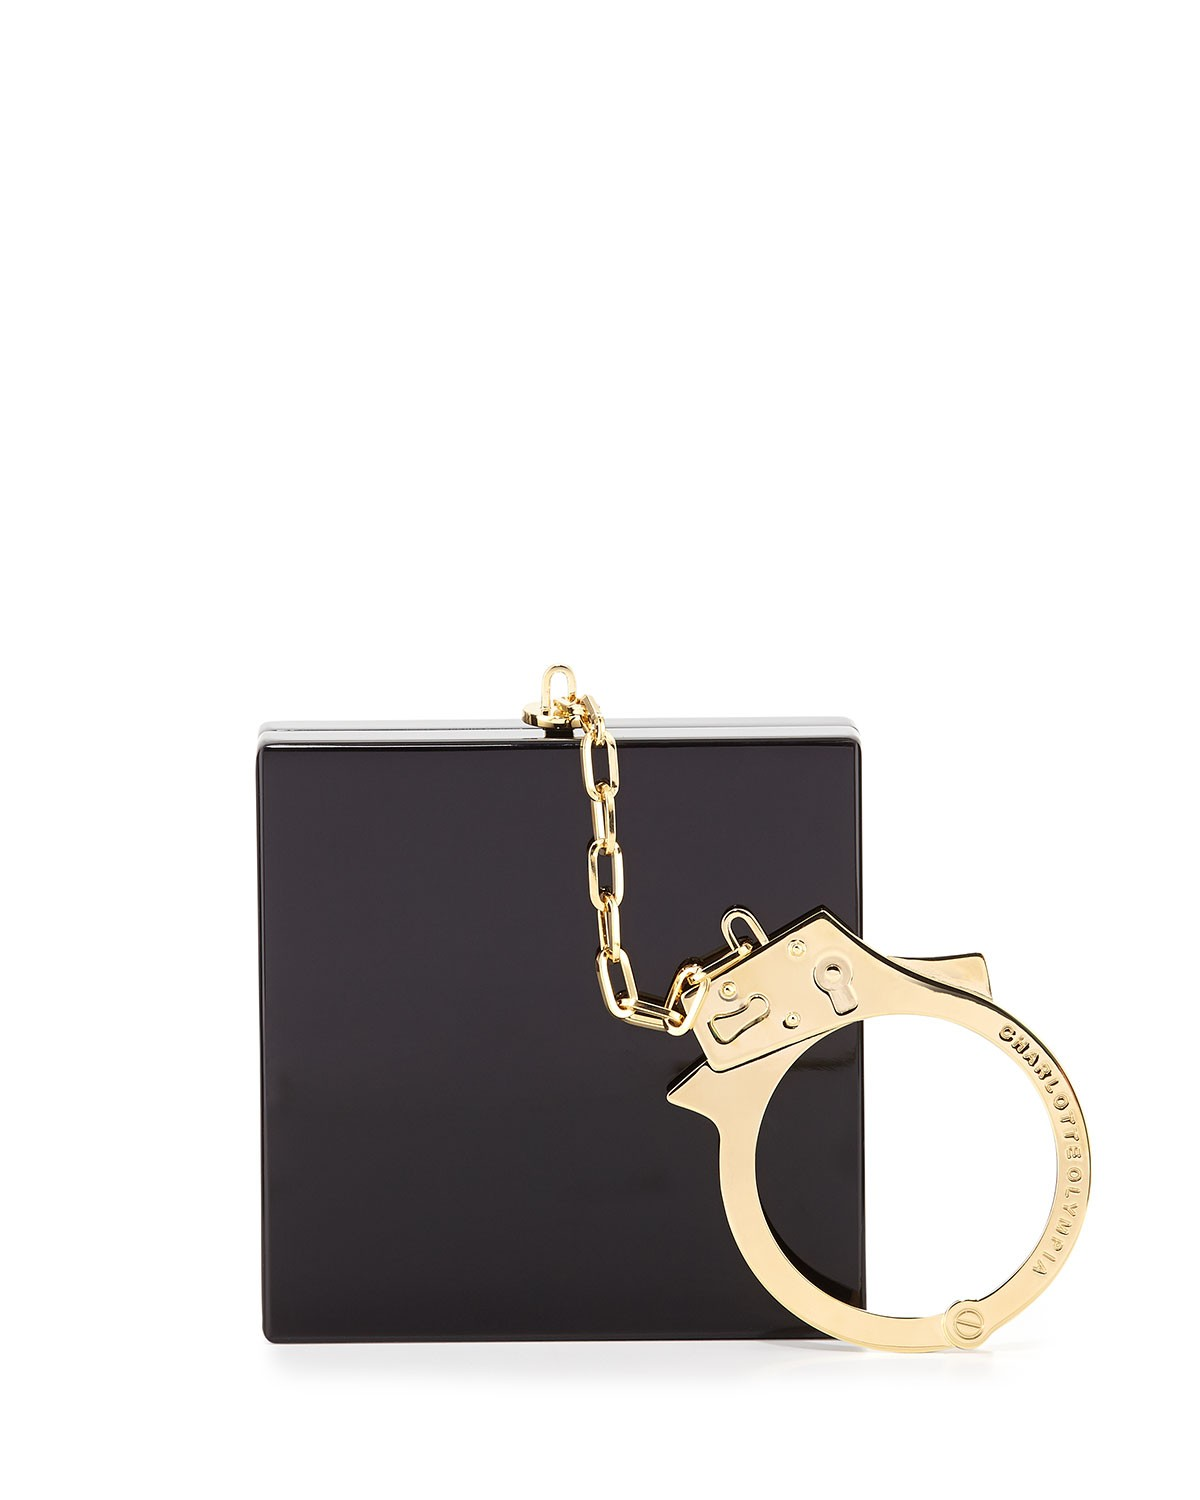 Handcuff Box Clutch Bag, Black - Charlotte Olympia